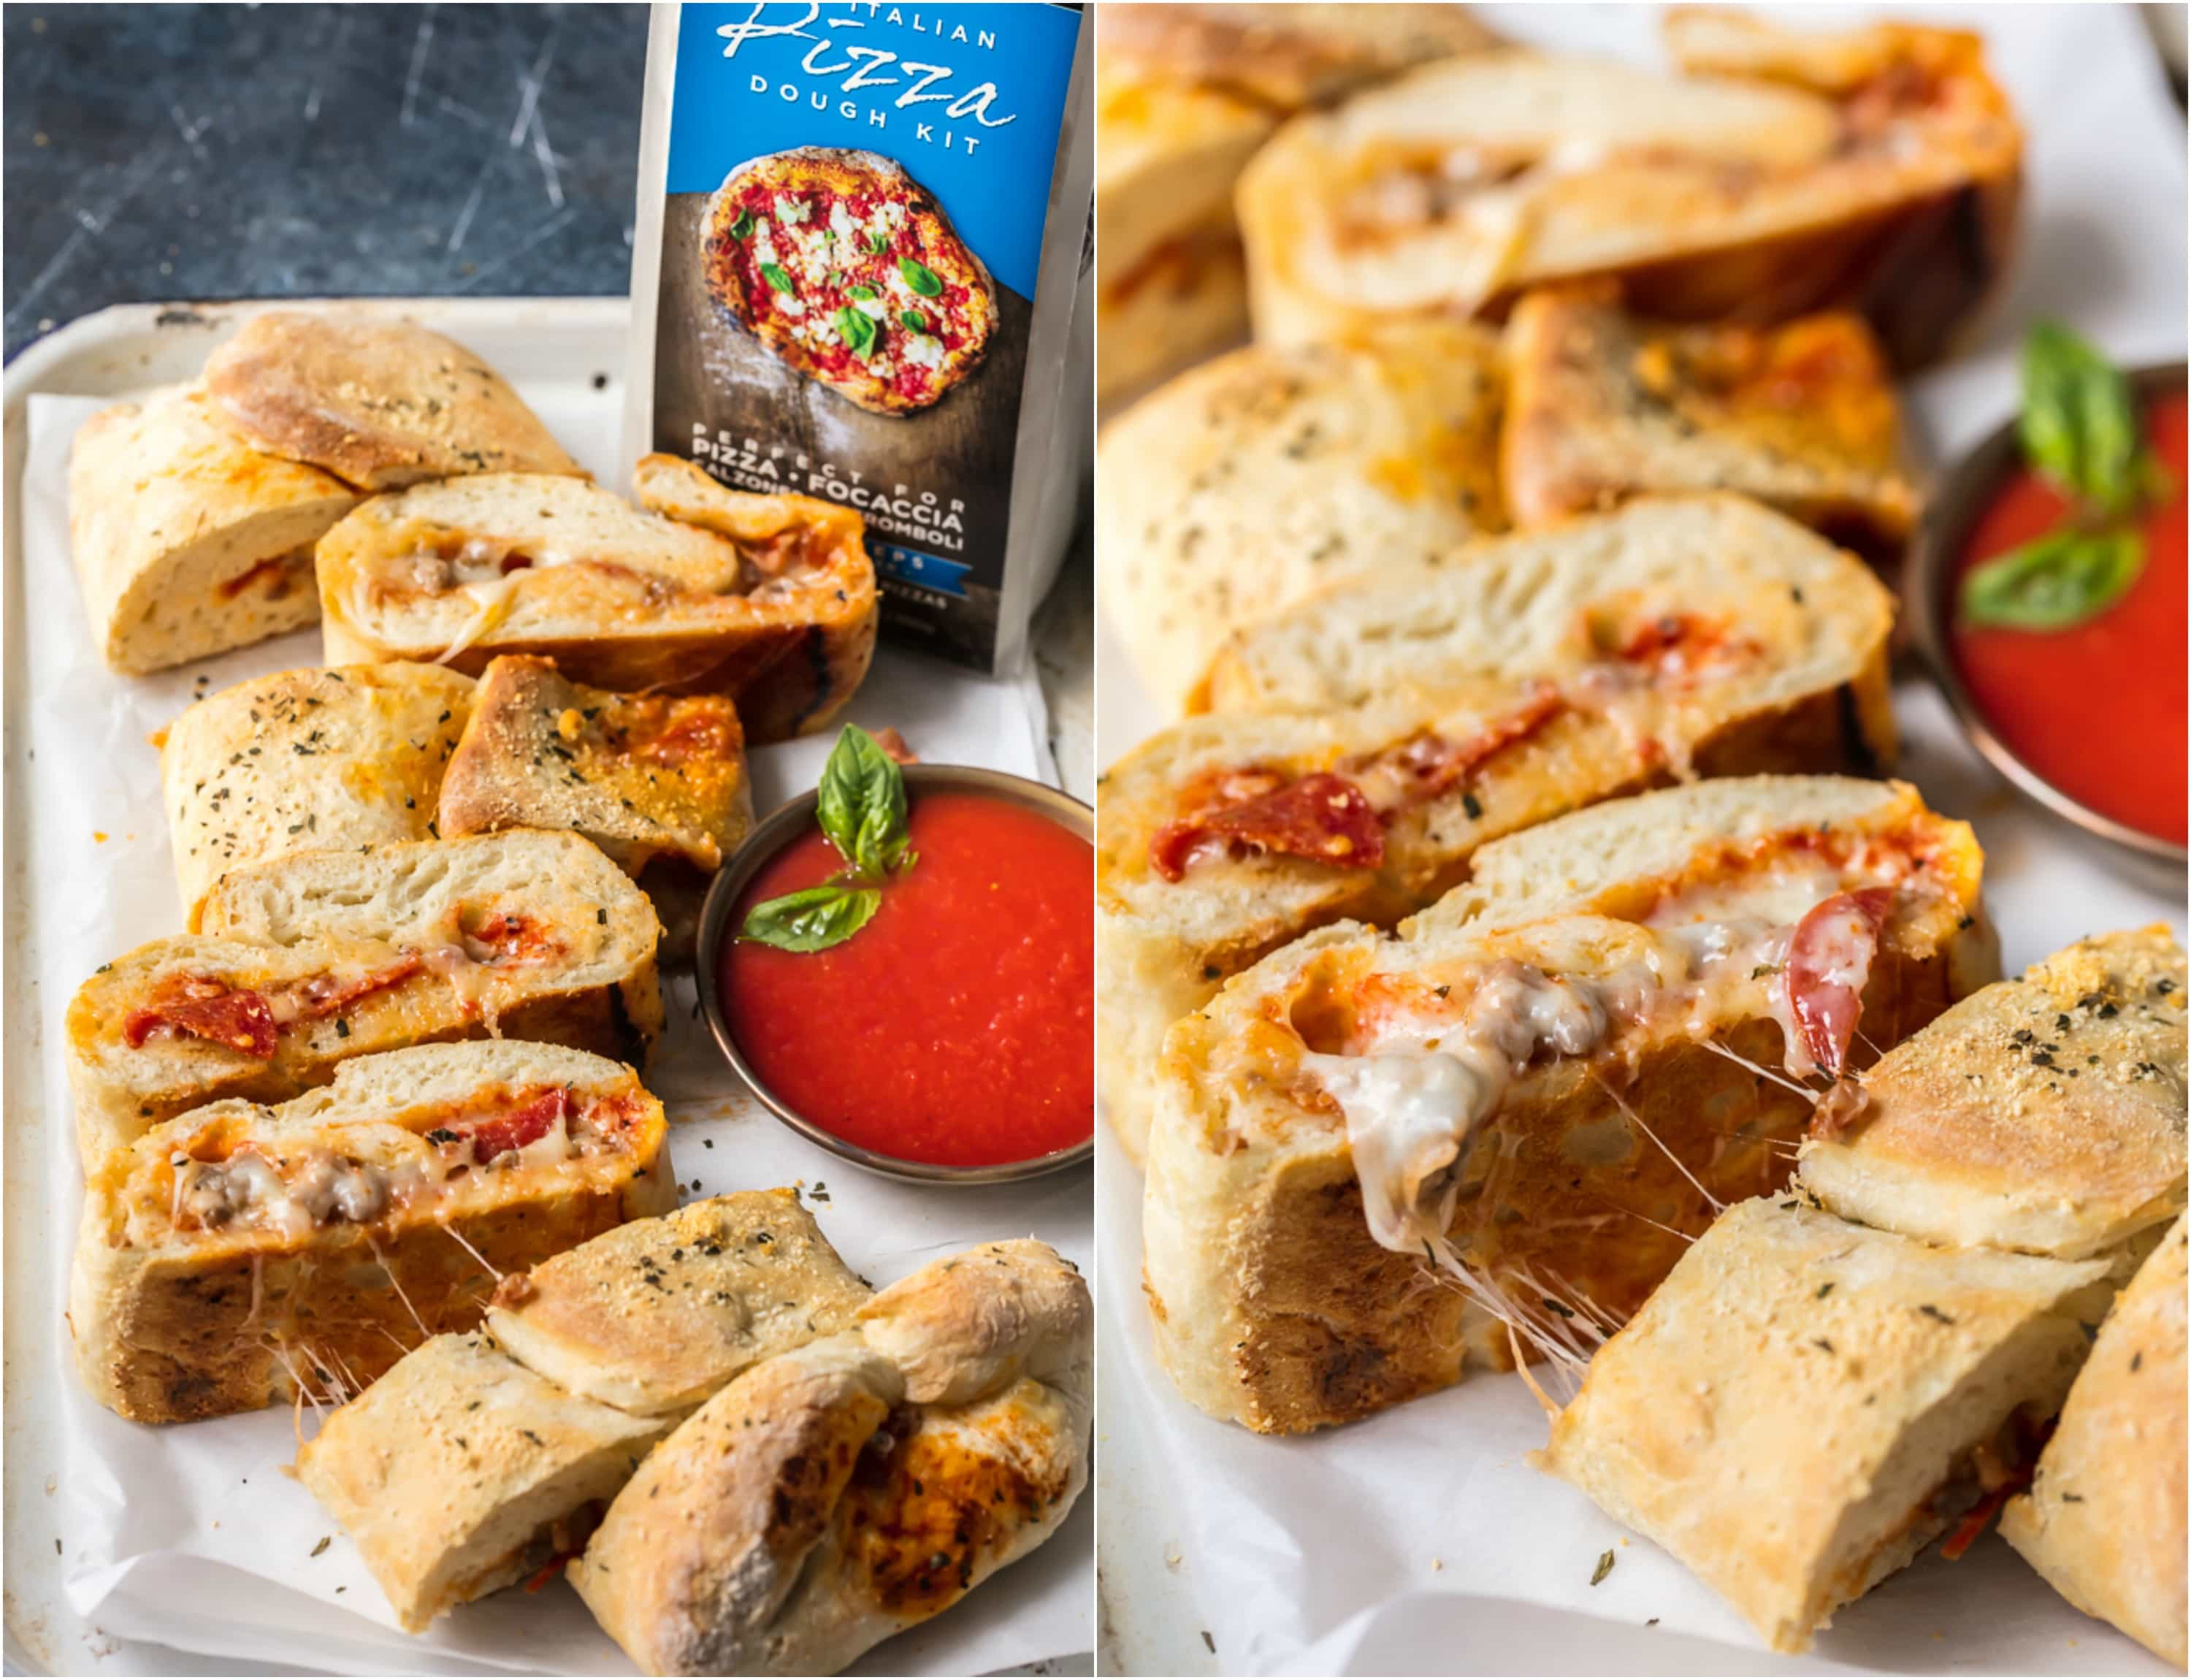 This EASY Stromboli Recipe is one of our go-to weeknight meals the entire family LOVES. Meat Lovers Stromboli is stuffed with juicy sausage, pepperoni, and bacon and loaded with cheese. The crust bakes up crispy on the outside and fluffy on the inside for the ultimate and perfect Stromboli!